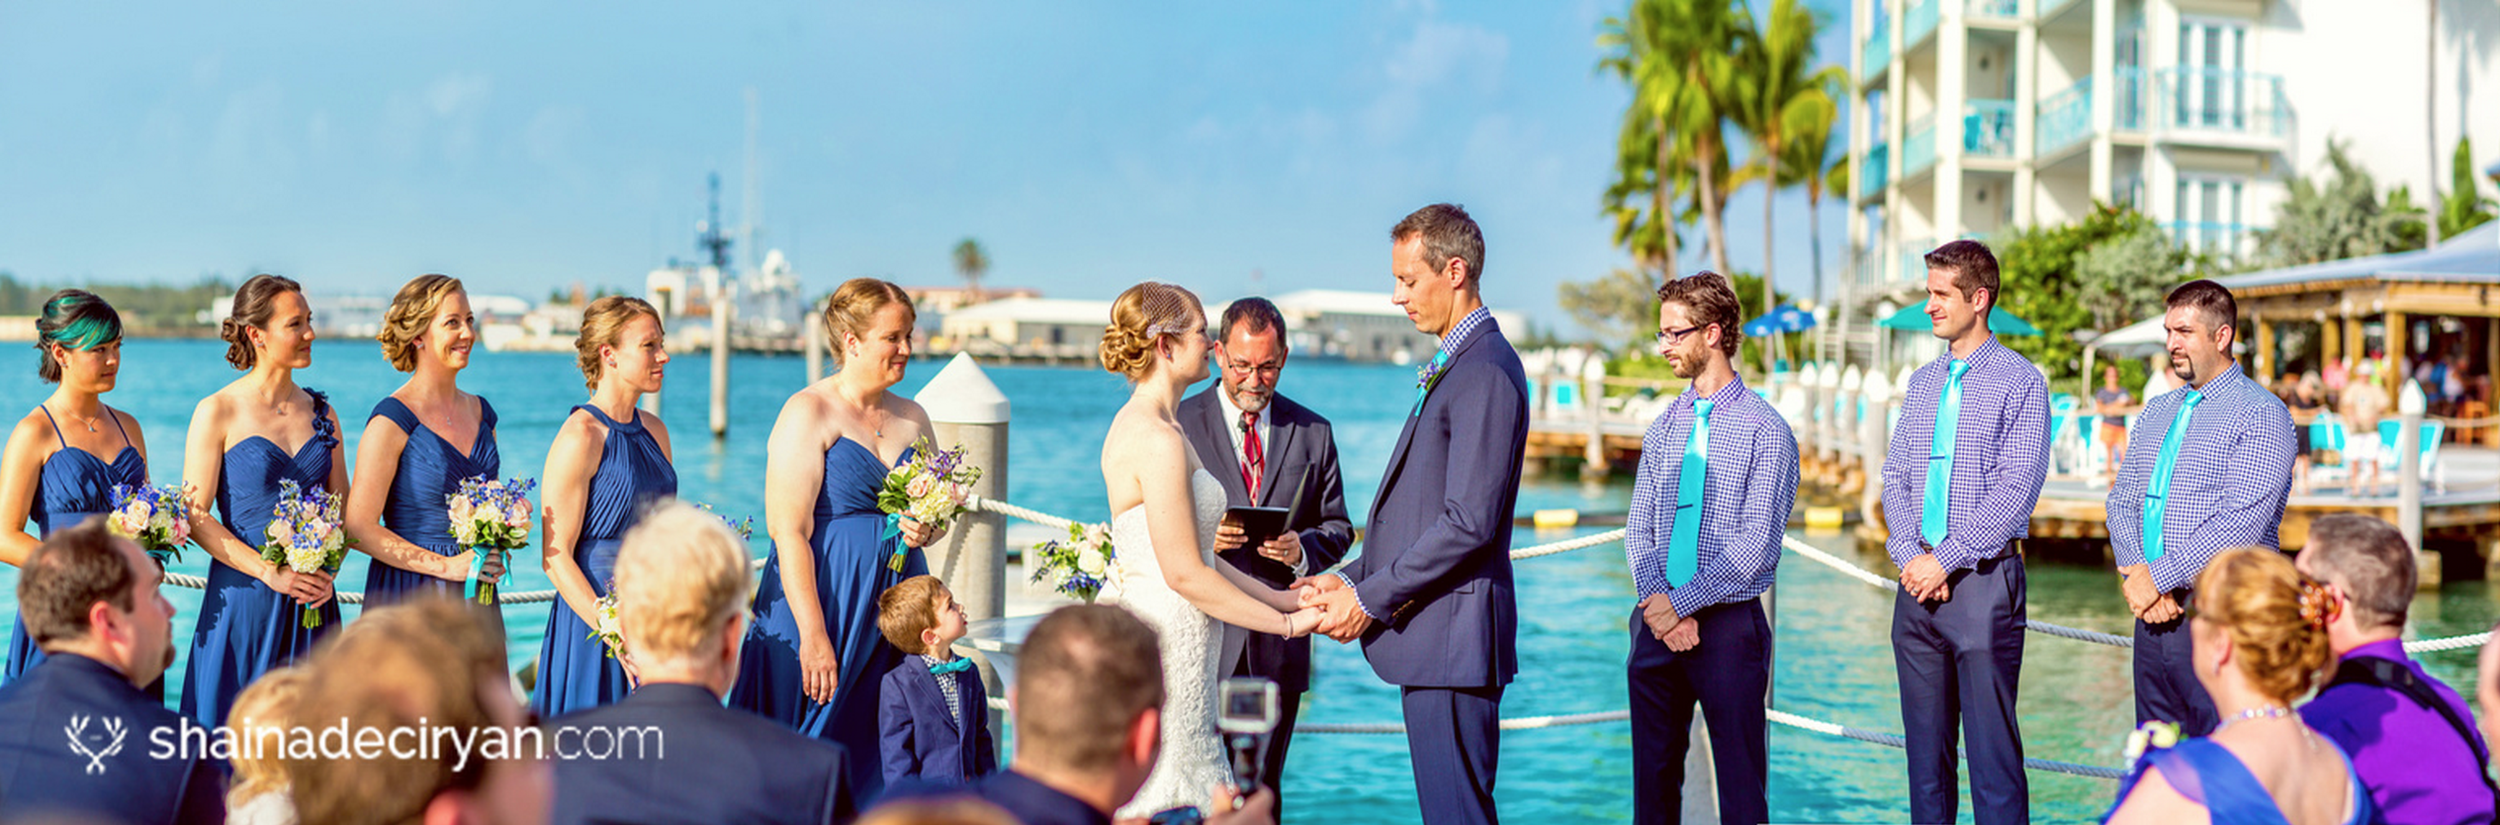 Jason and Jennifer Key West Hyatt Destination wedding